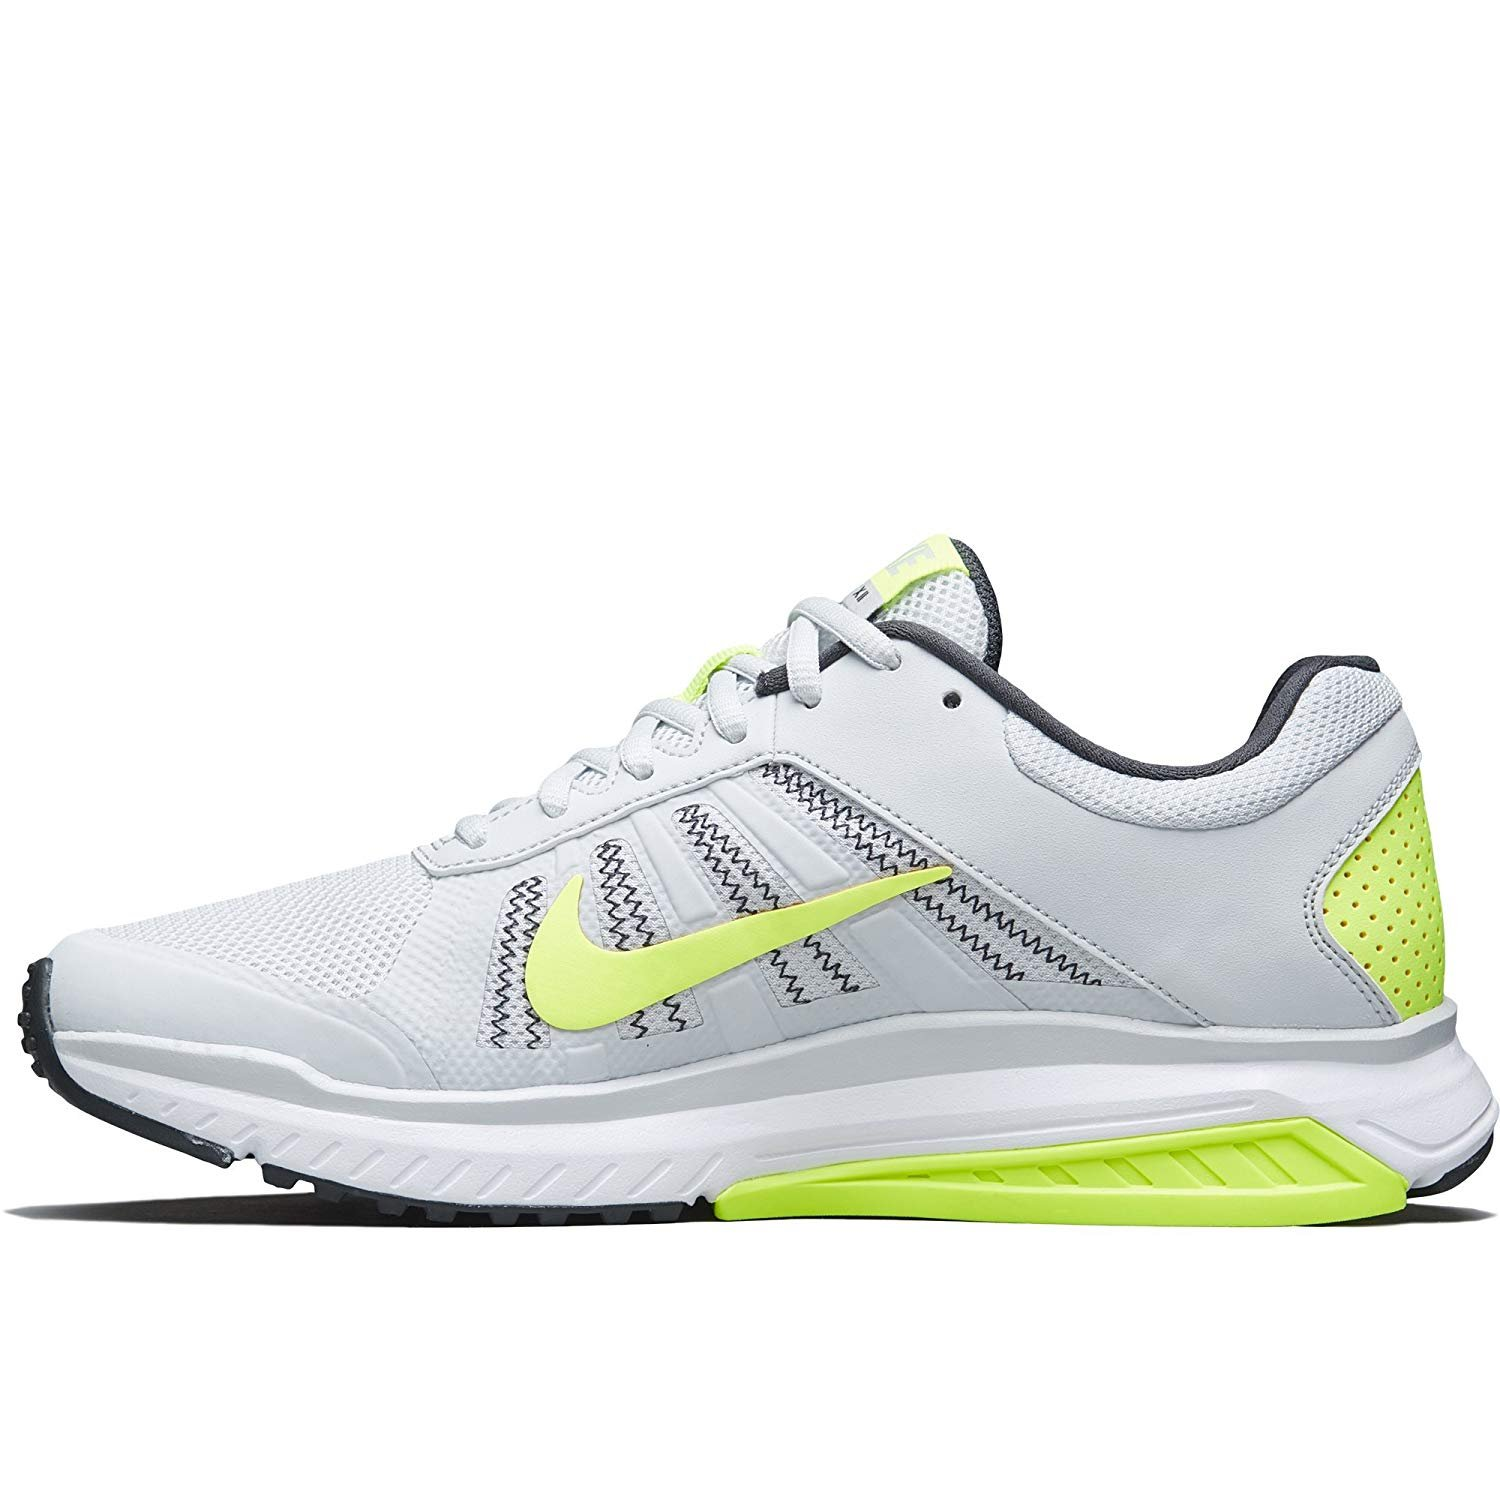 premium selection 8ee0b cb1e2 NIKE Dart 12 MSL Men's Running Shoes: Buy Online at Low Prices in India -  Amazon.in